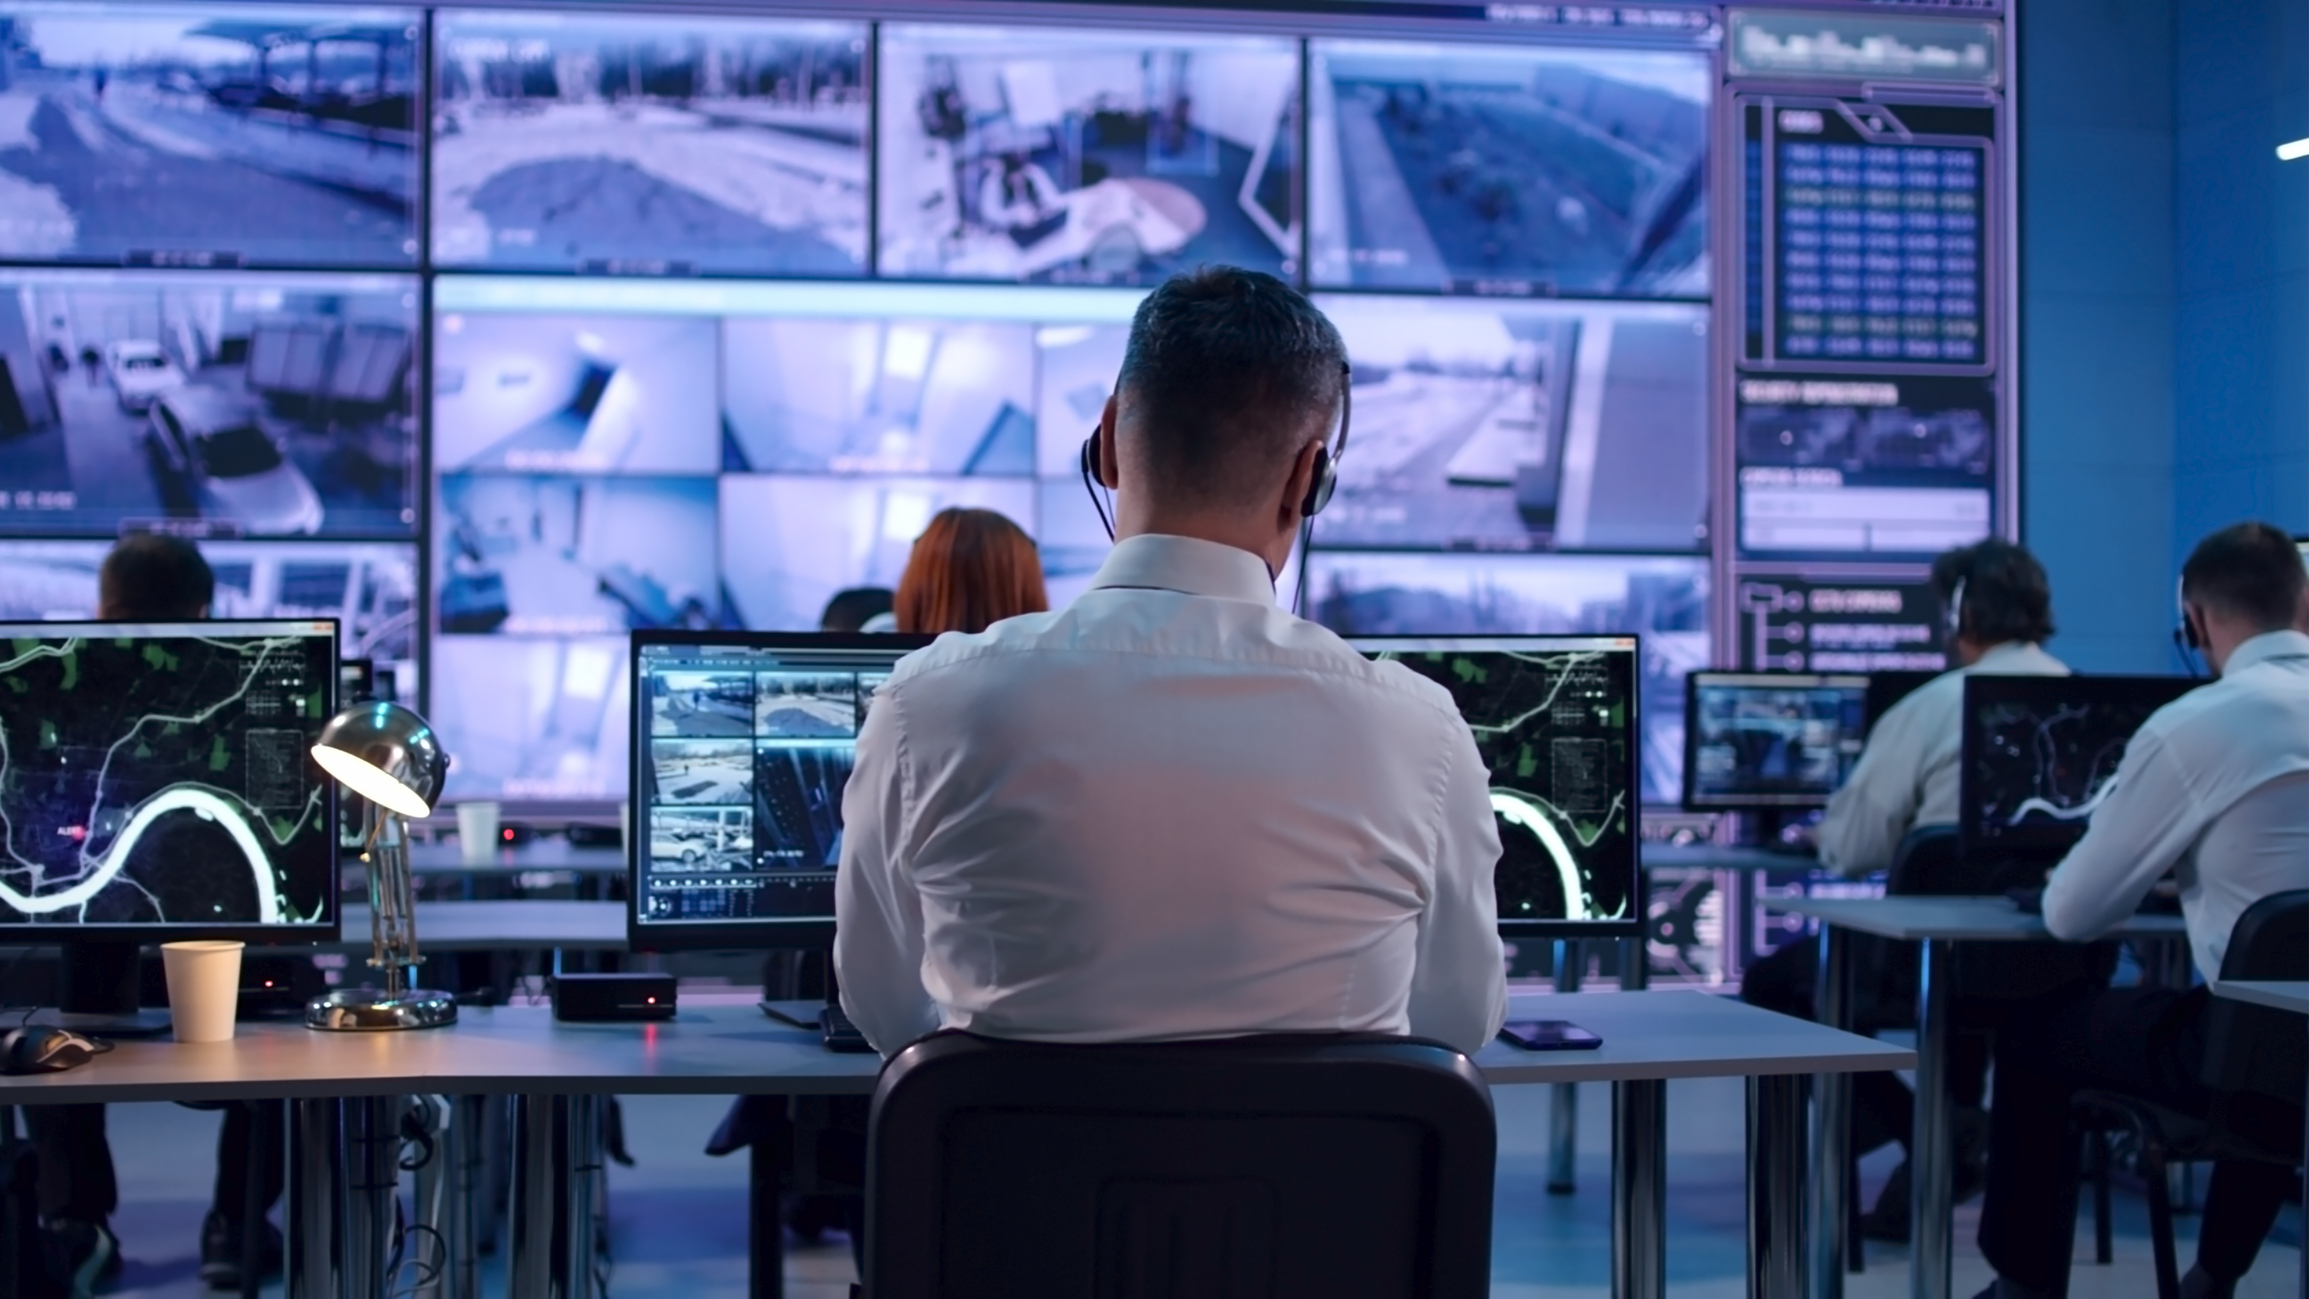 Why workplace employee surveillance can damage your company culture